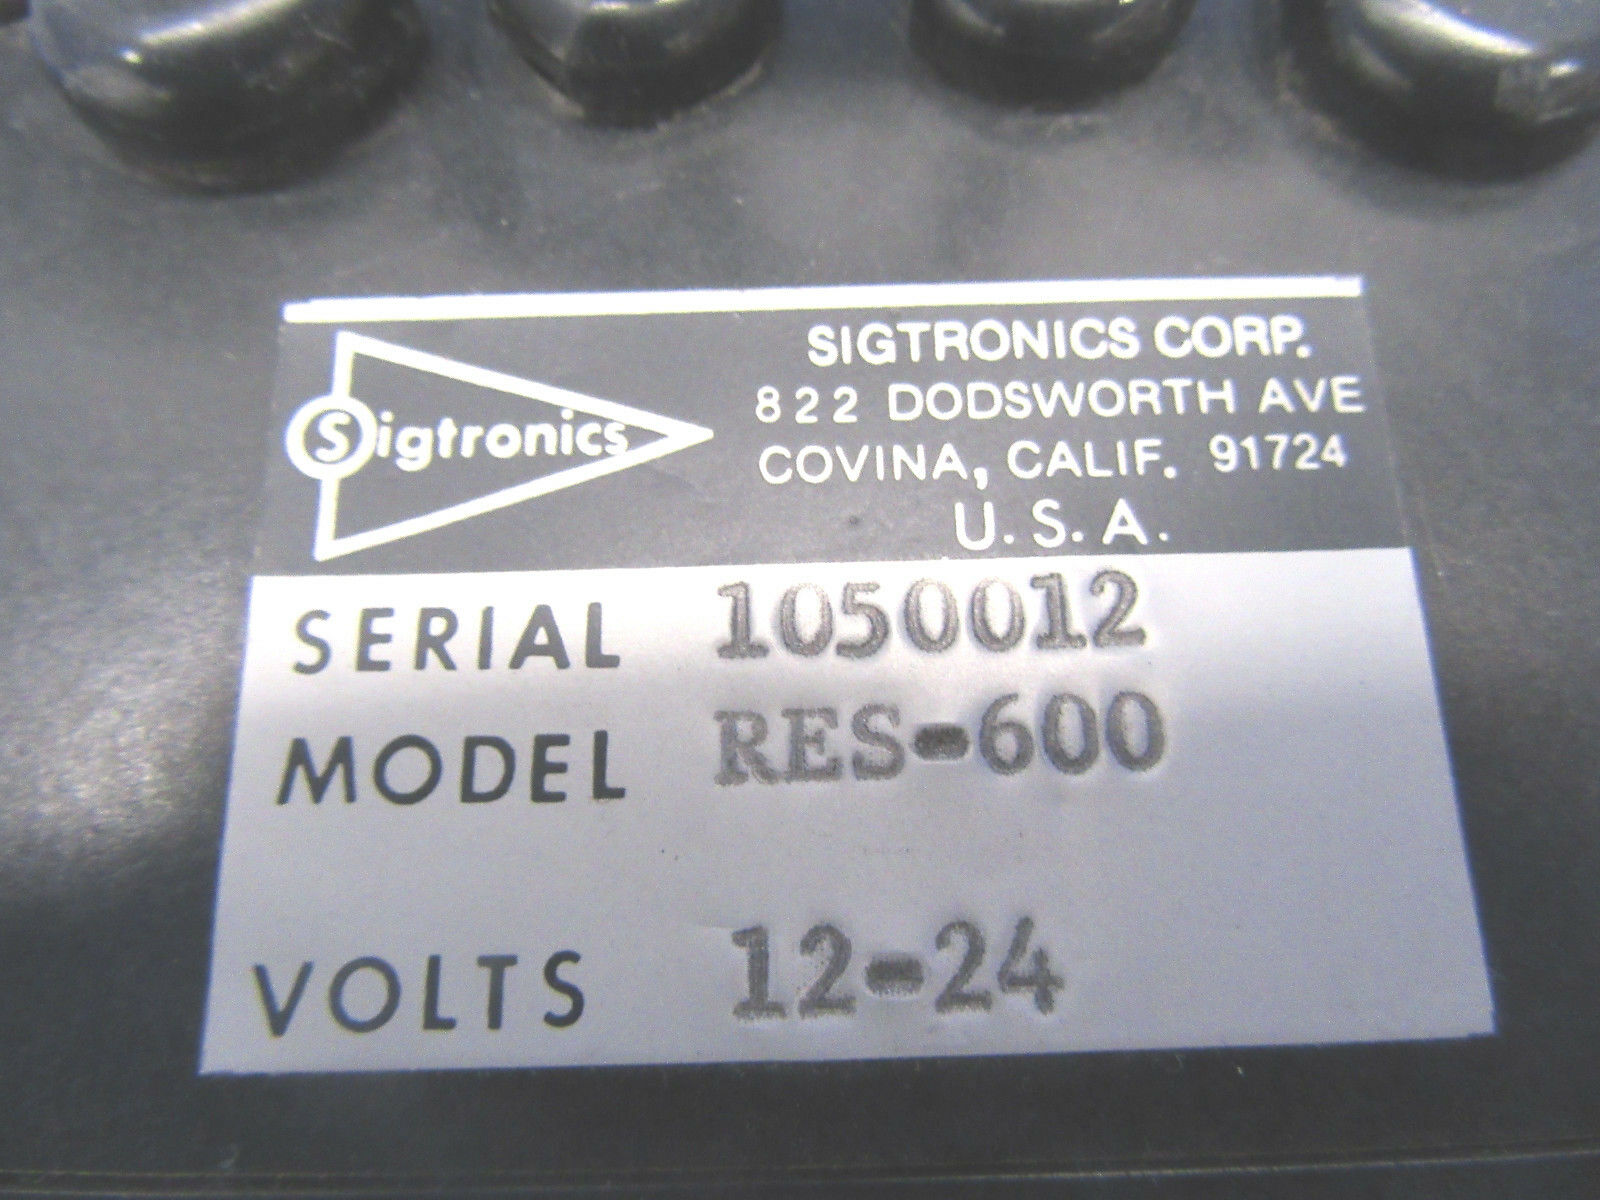 Sigtronics Stereo Switcher 12-24 Volts P/N RES-600 (0518-345)